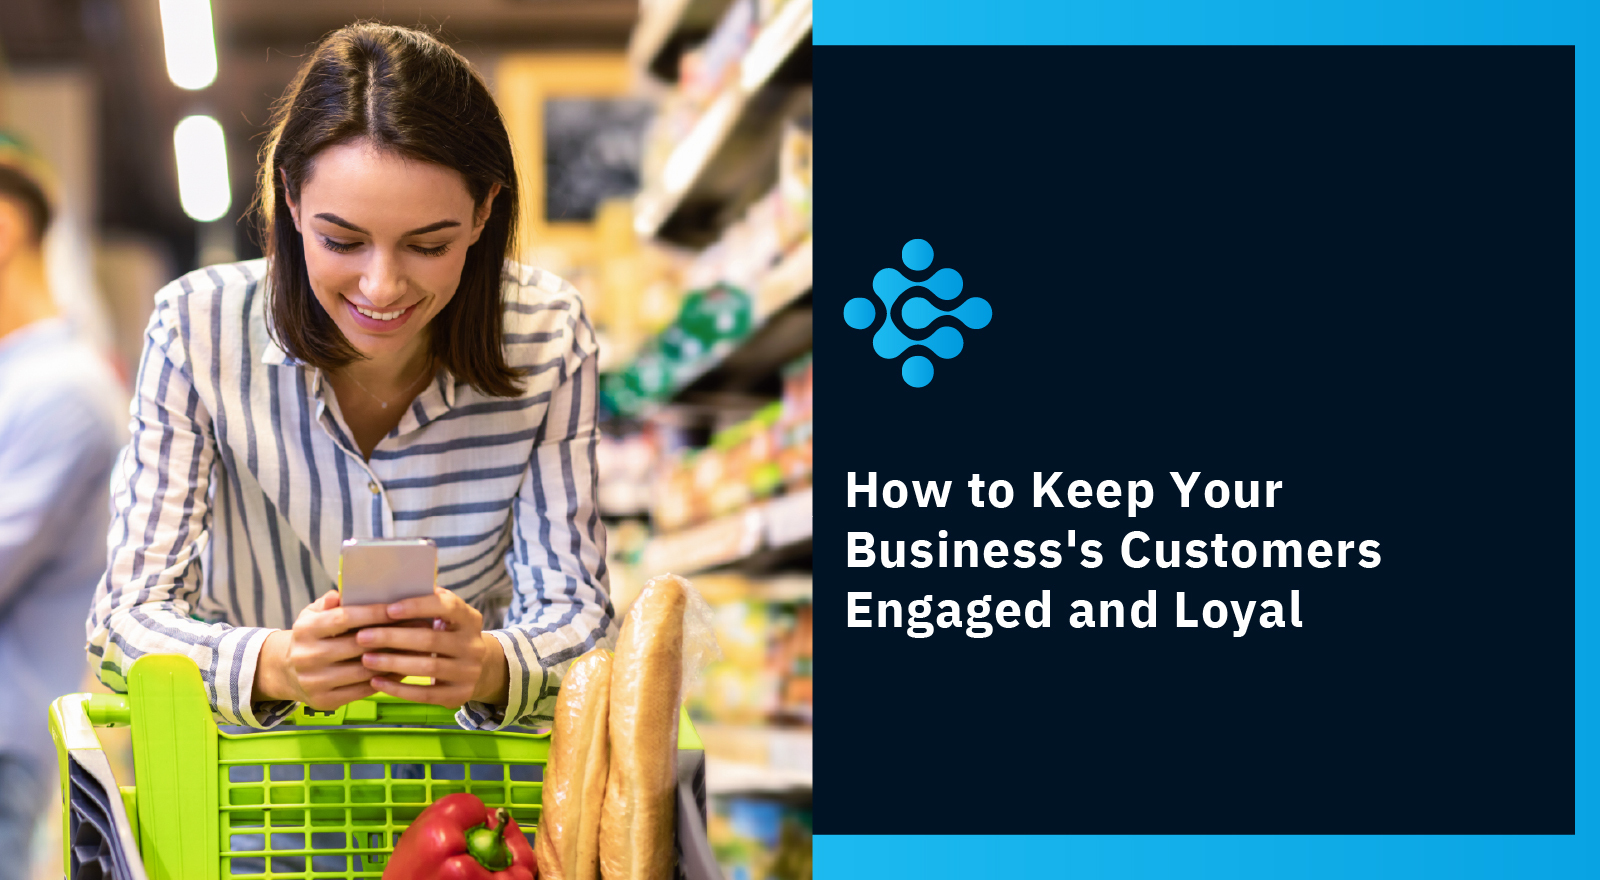 How-to-Keep-Your-Business's-Customers-Engaged-and-Loyal